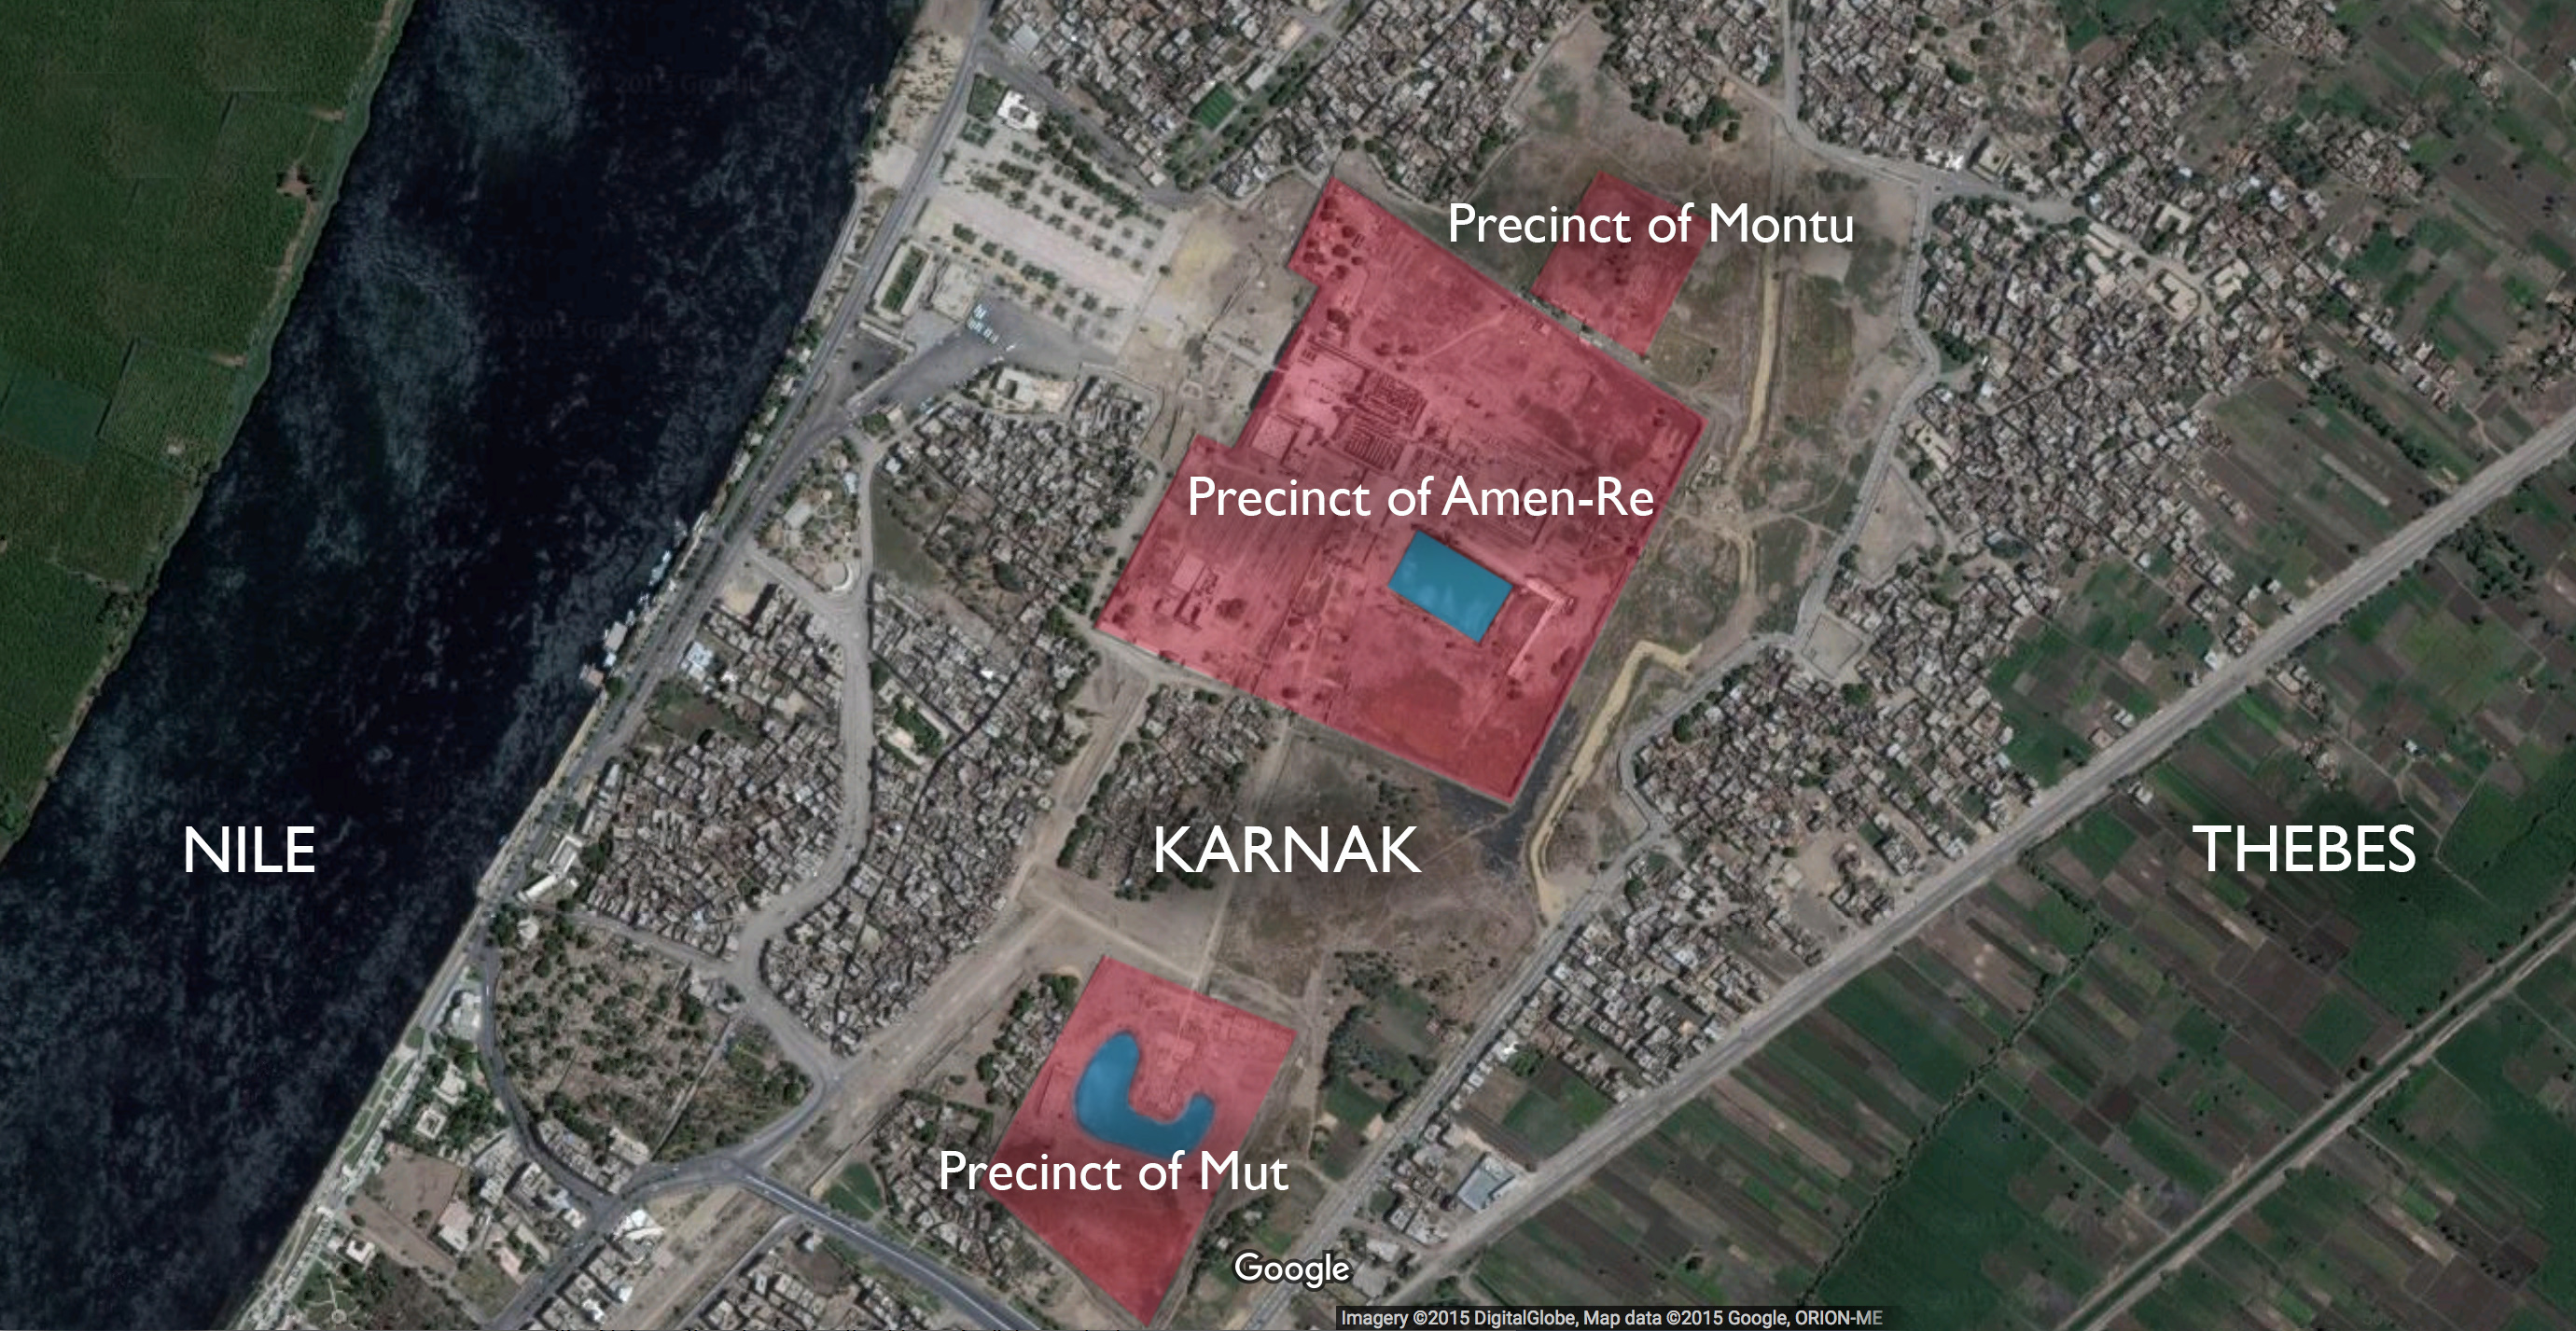 Google Earth view of Karnak